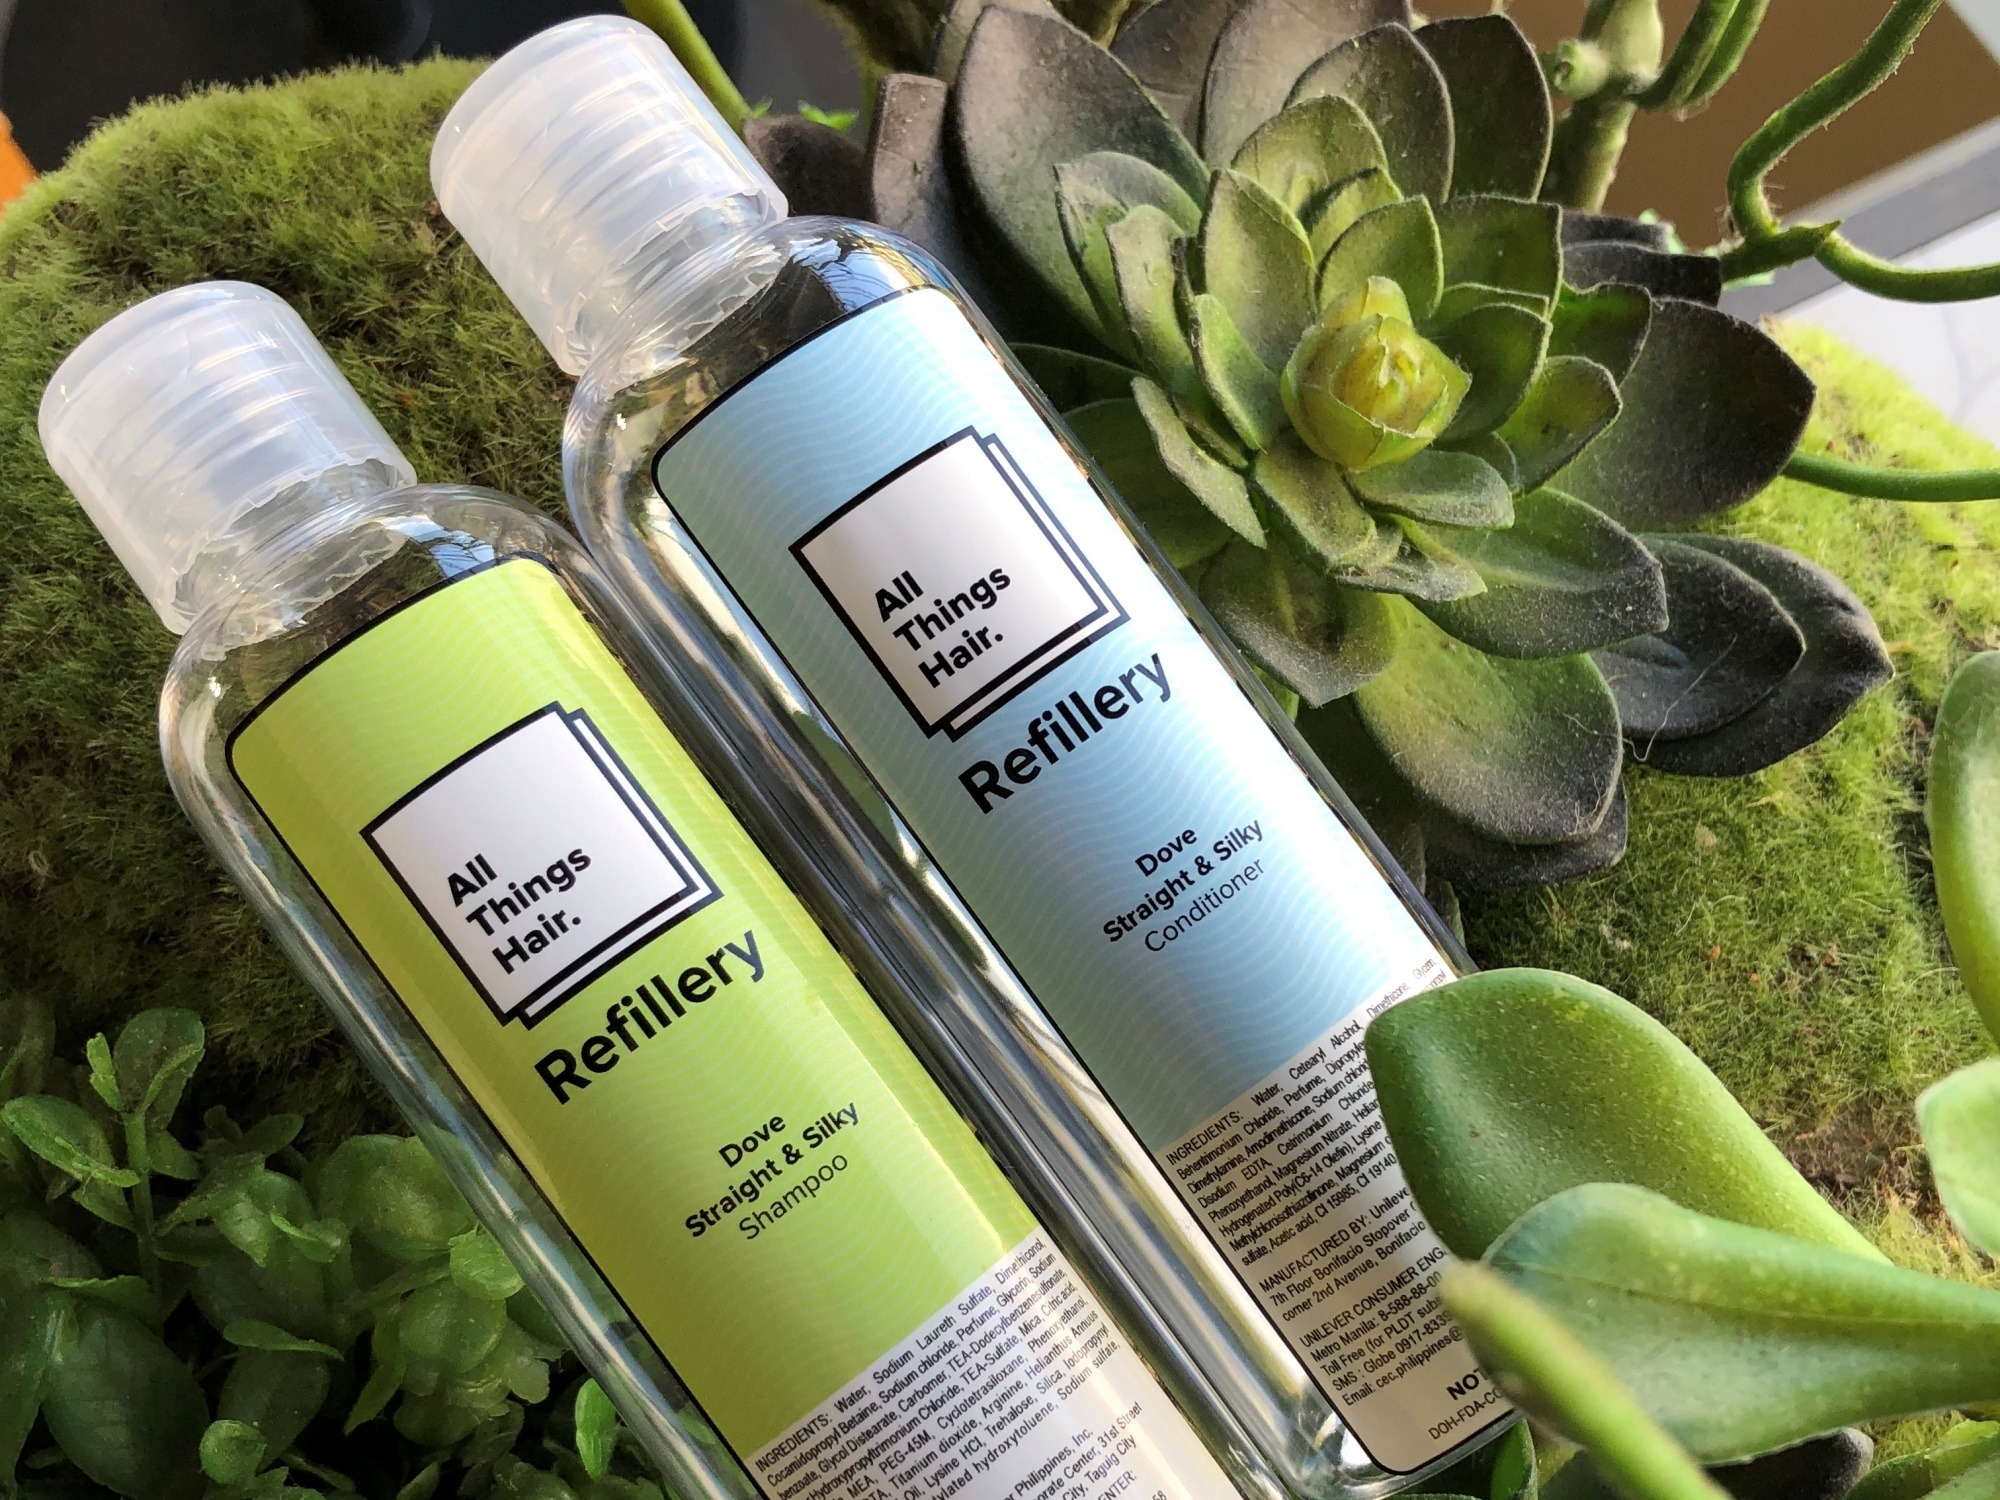 All Things Hair Refillery: ATH Refillery bottles with leaves at the background